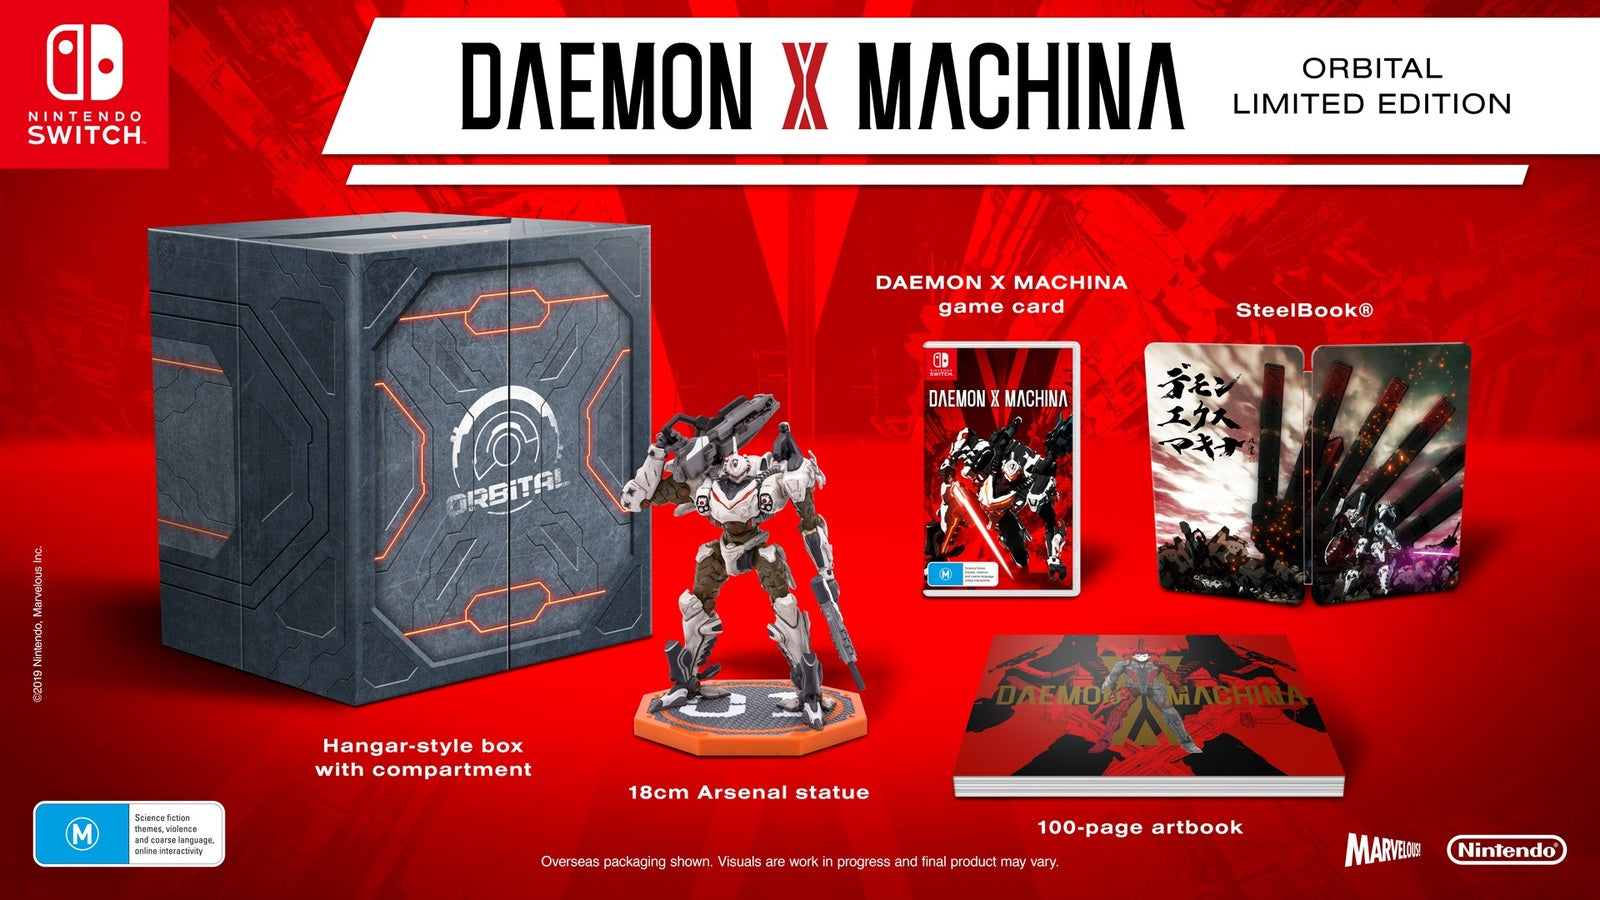 Daemon X Machina Orbital Limited Edition - Nintendo Switch